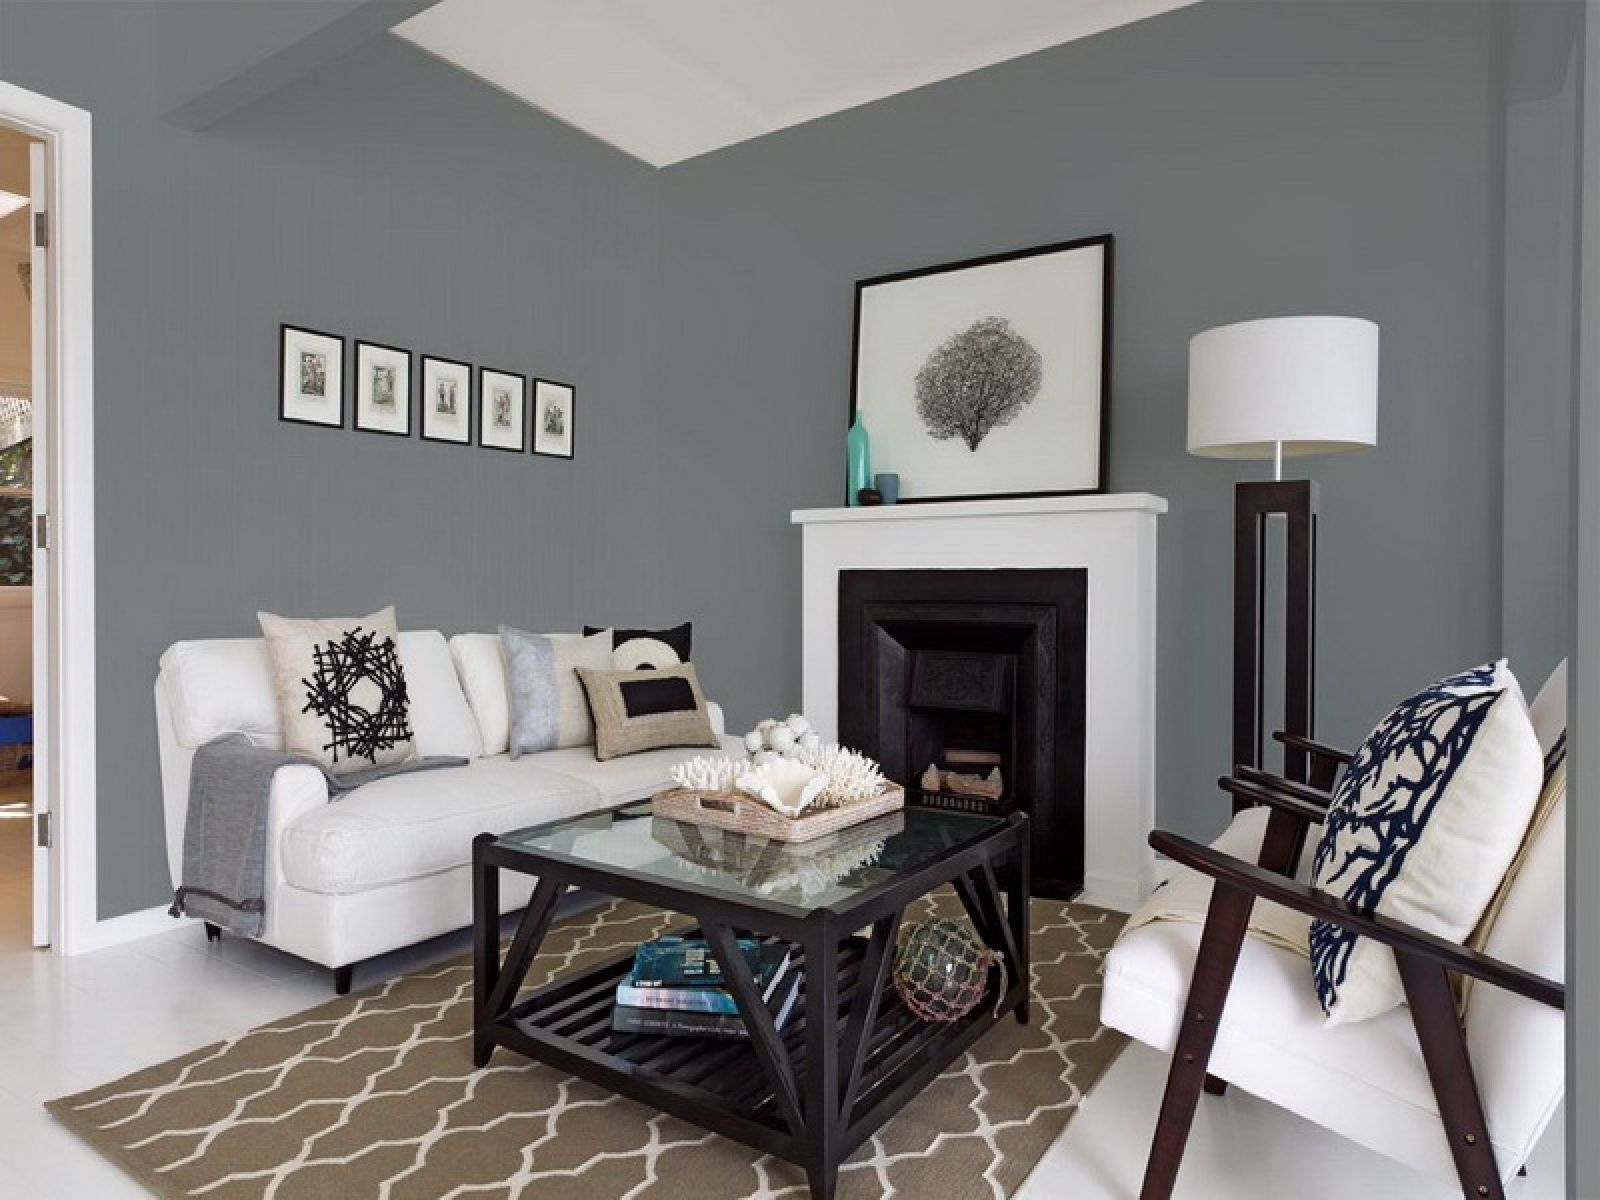 Pin Dark Grey Wall Color Scheme And Blue Bedding Sets In Small Living Room Grey Walls Living Room Living Room Color Living Room Wall Color